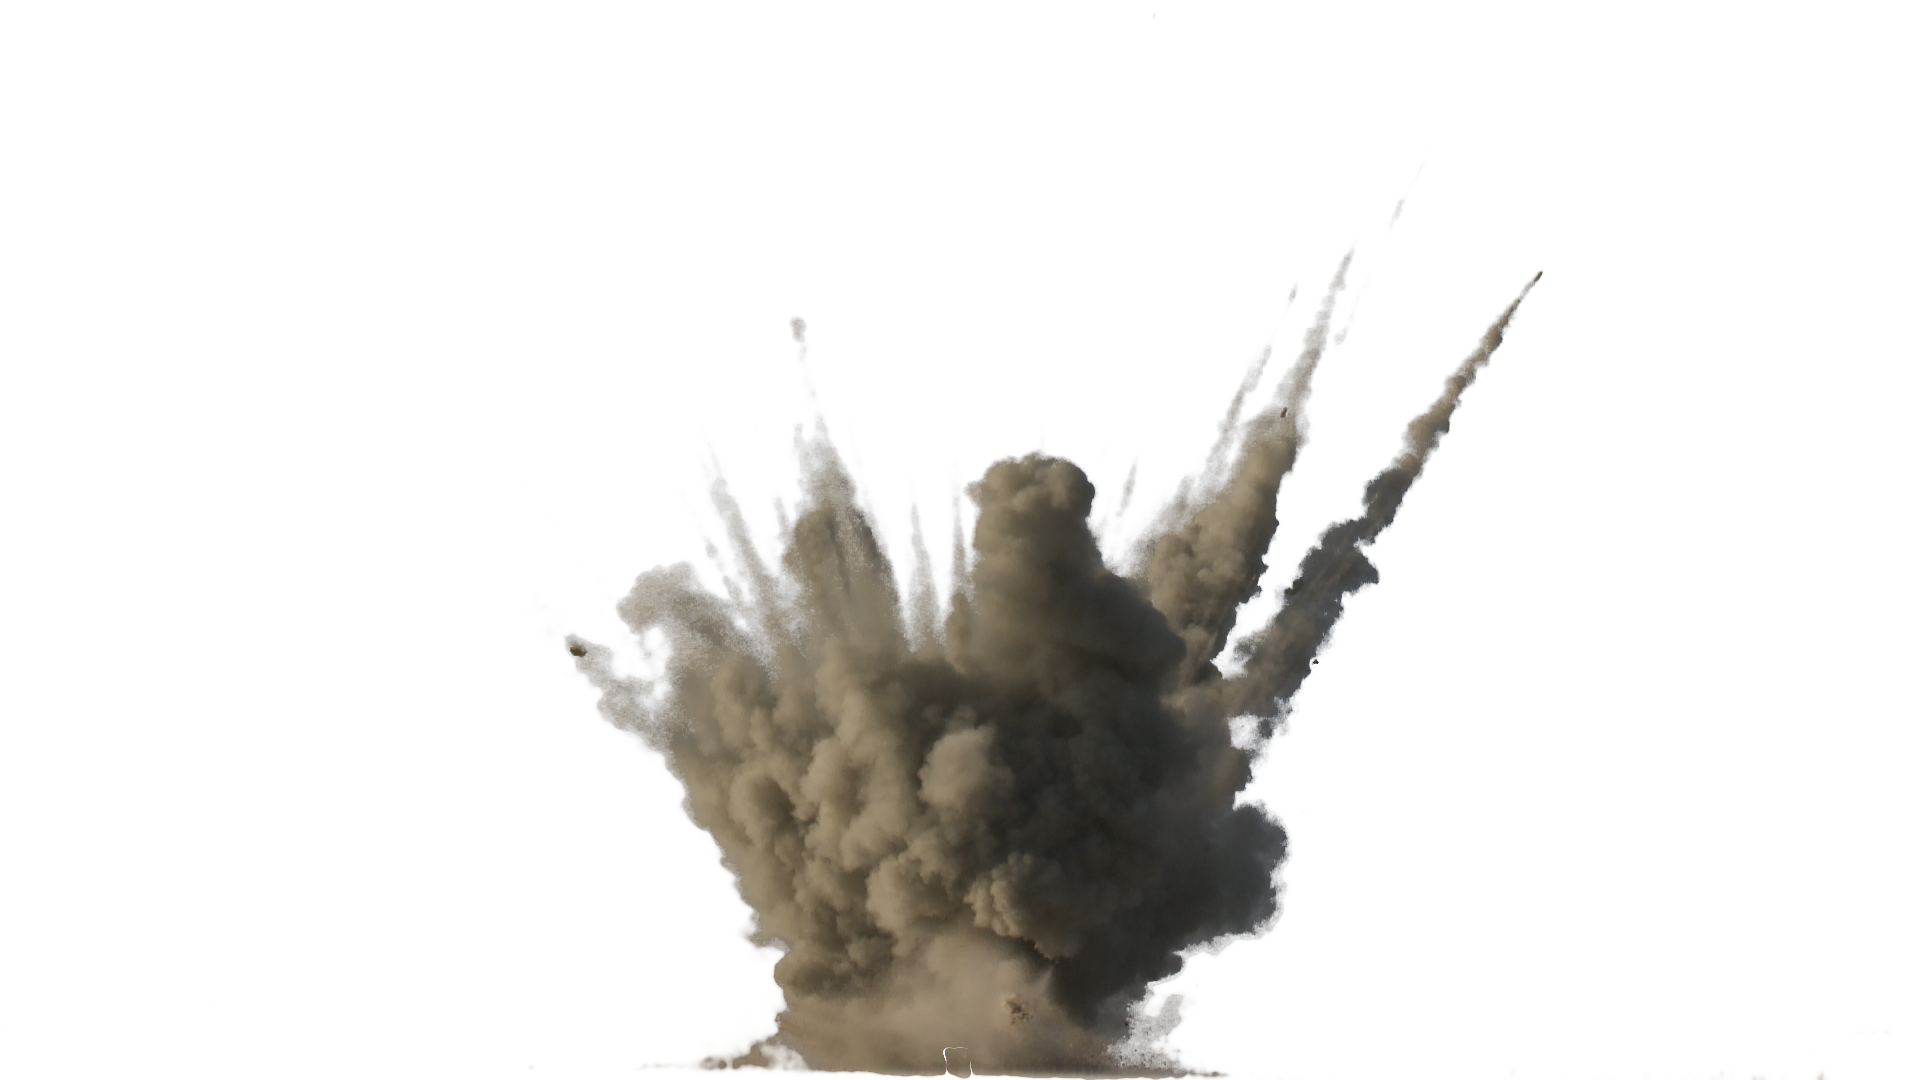 Explosion Transparent PNG HD 24 image #45947